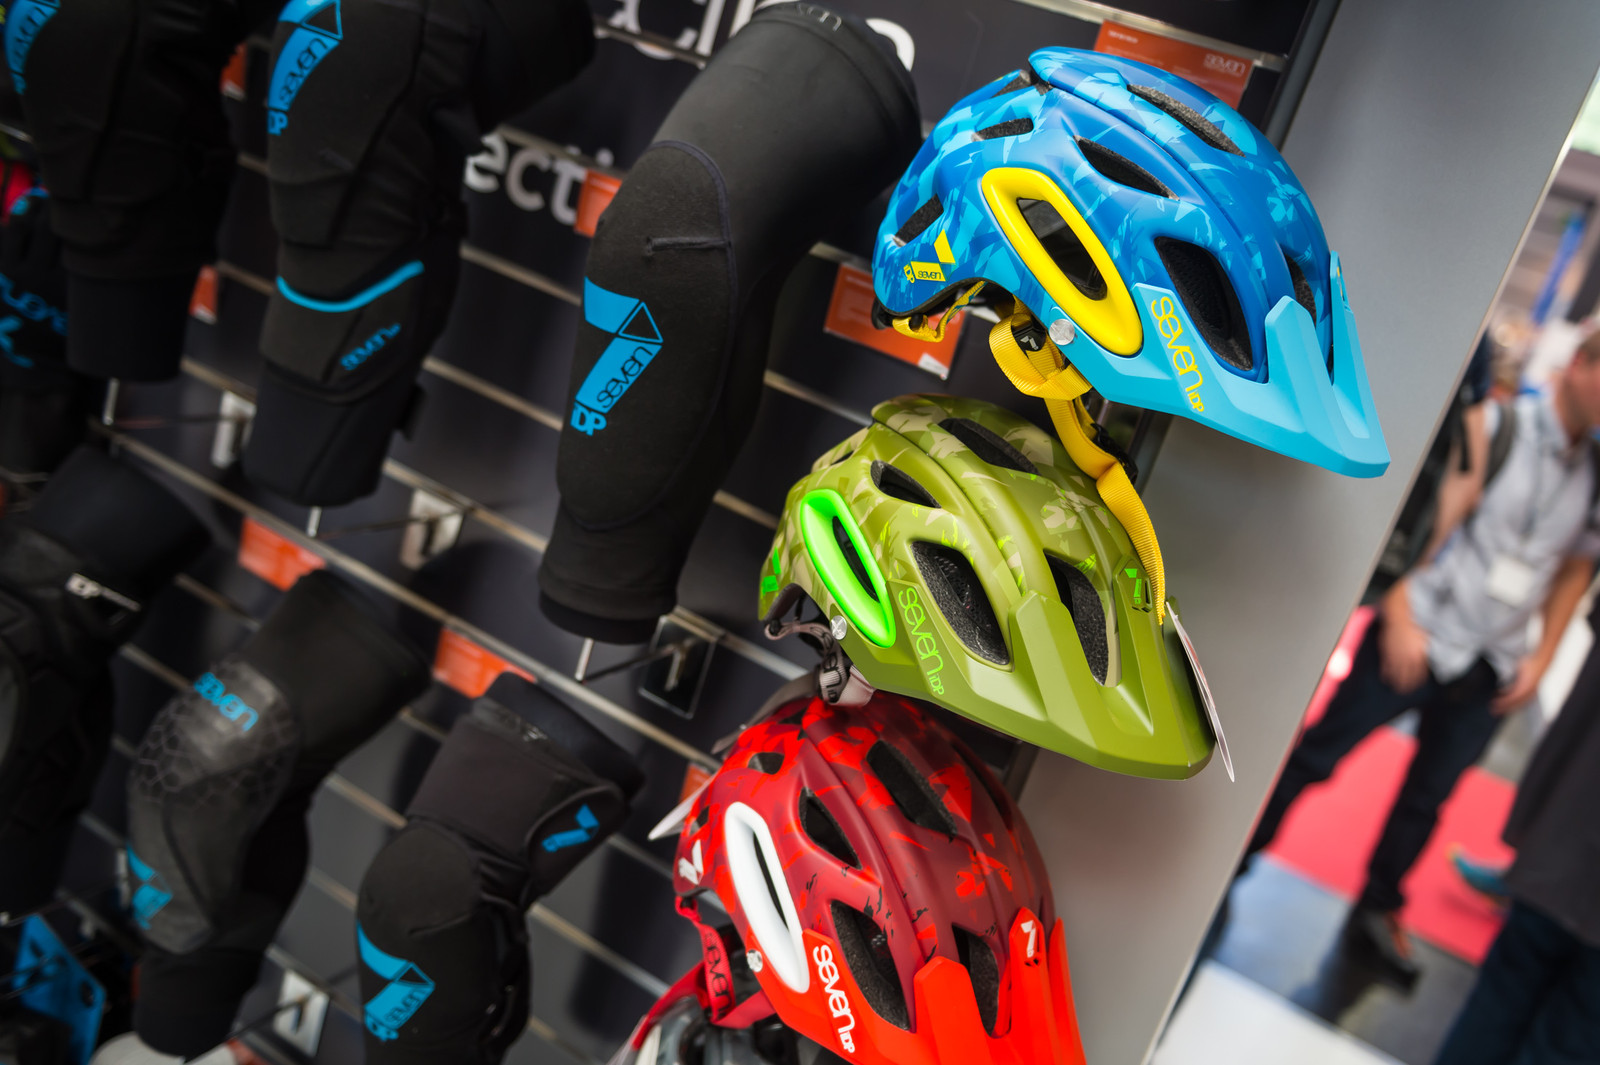 7iDP M2 and M4 Helmet and Transition Glove - EUROBIKE - 2017 Mountain Bike Apparel and Protective Gear - Mountain Biking Pictures - Vital MTB